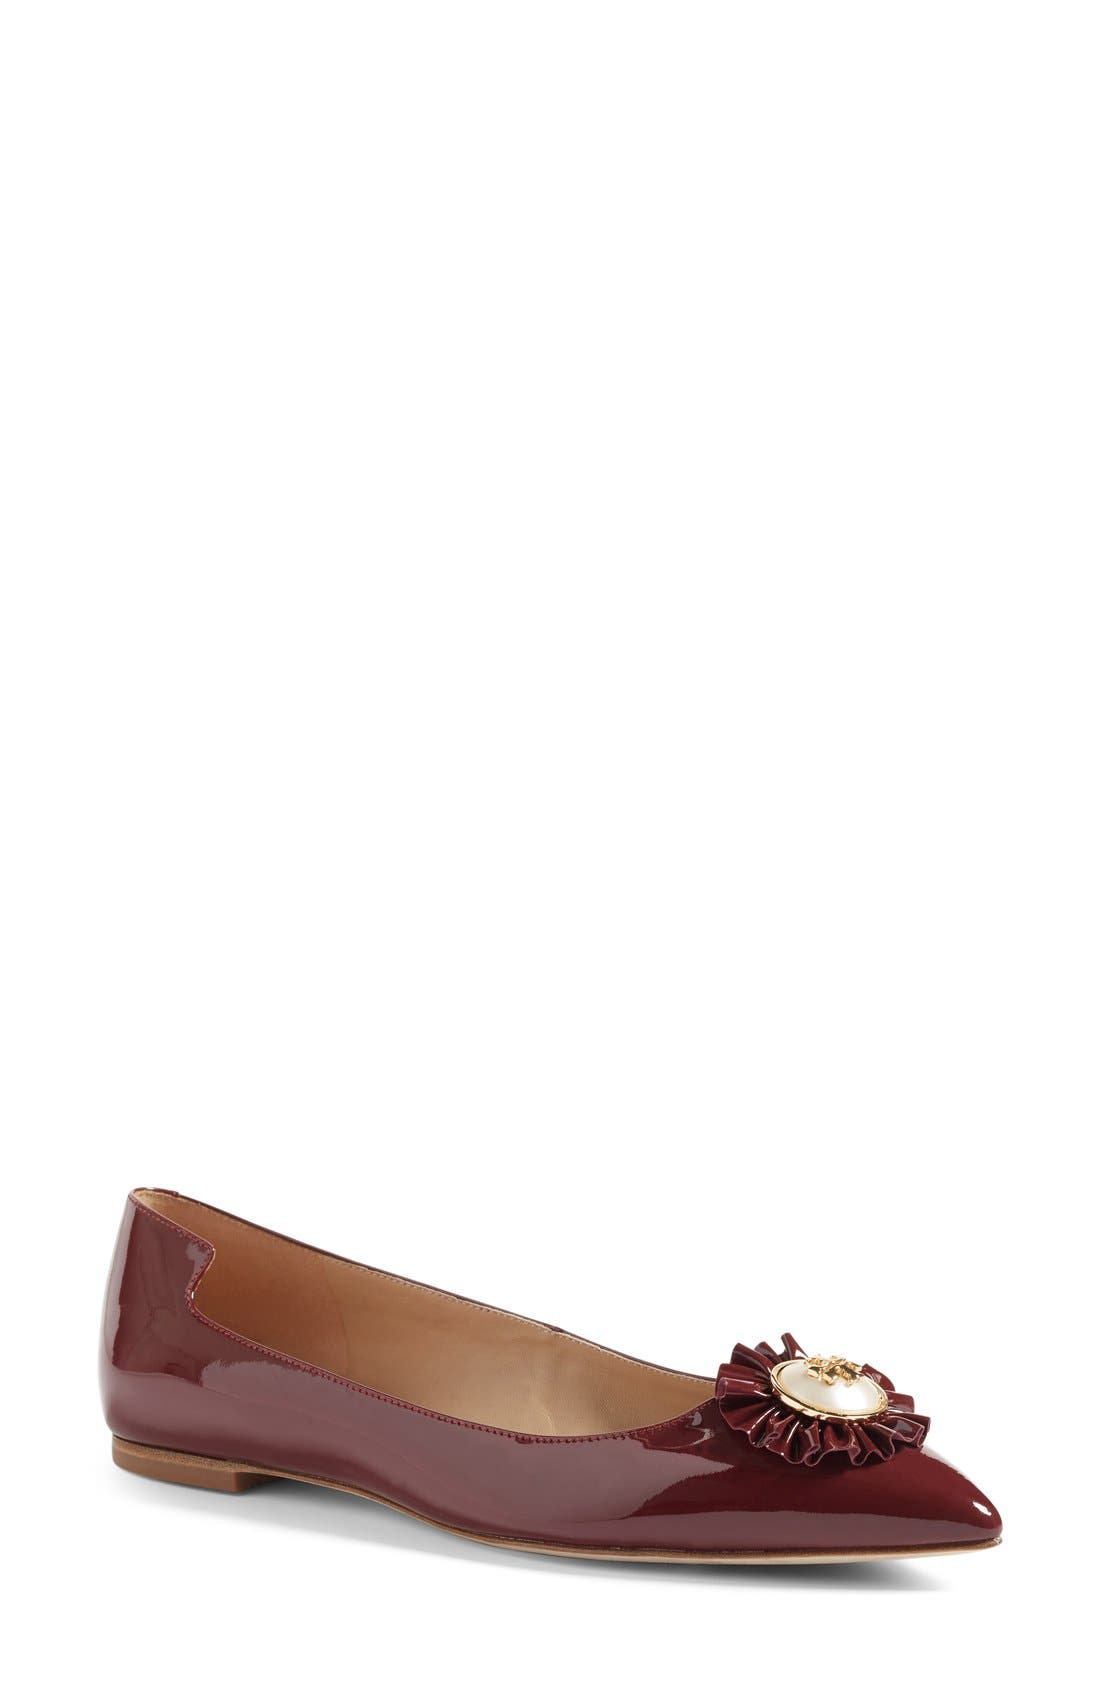 Main Image - Tory Burch Melody Pointy Toe Flat (Women)